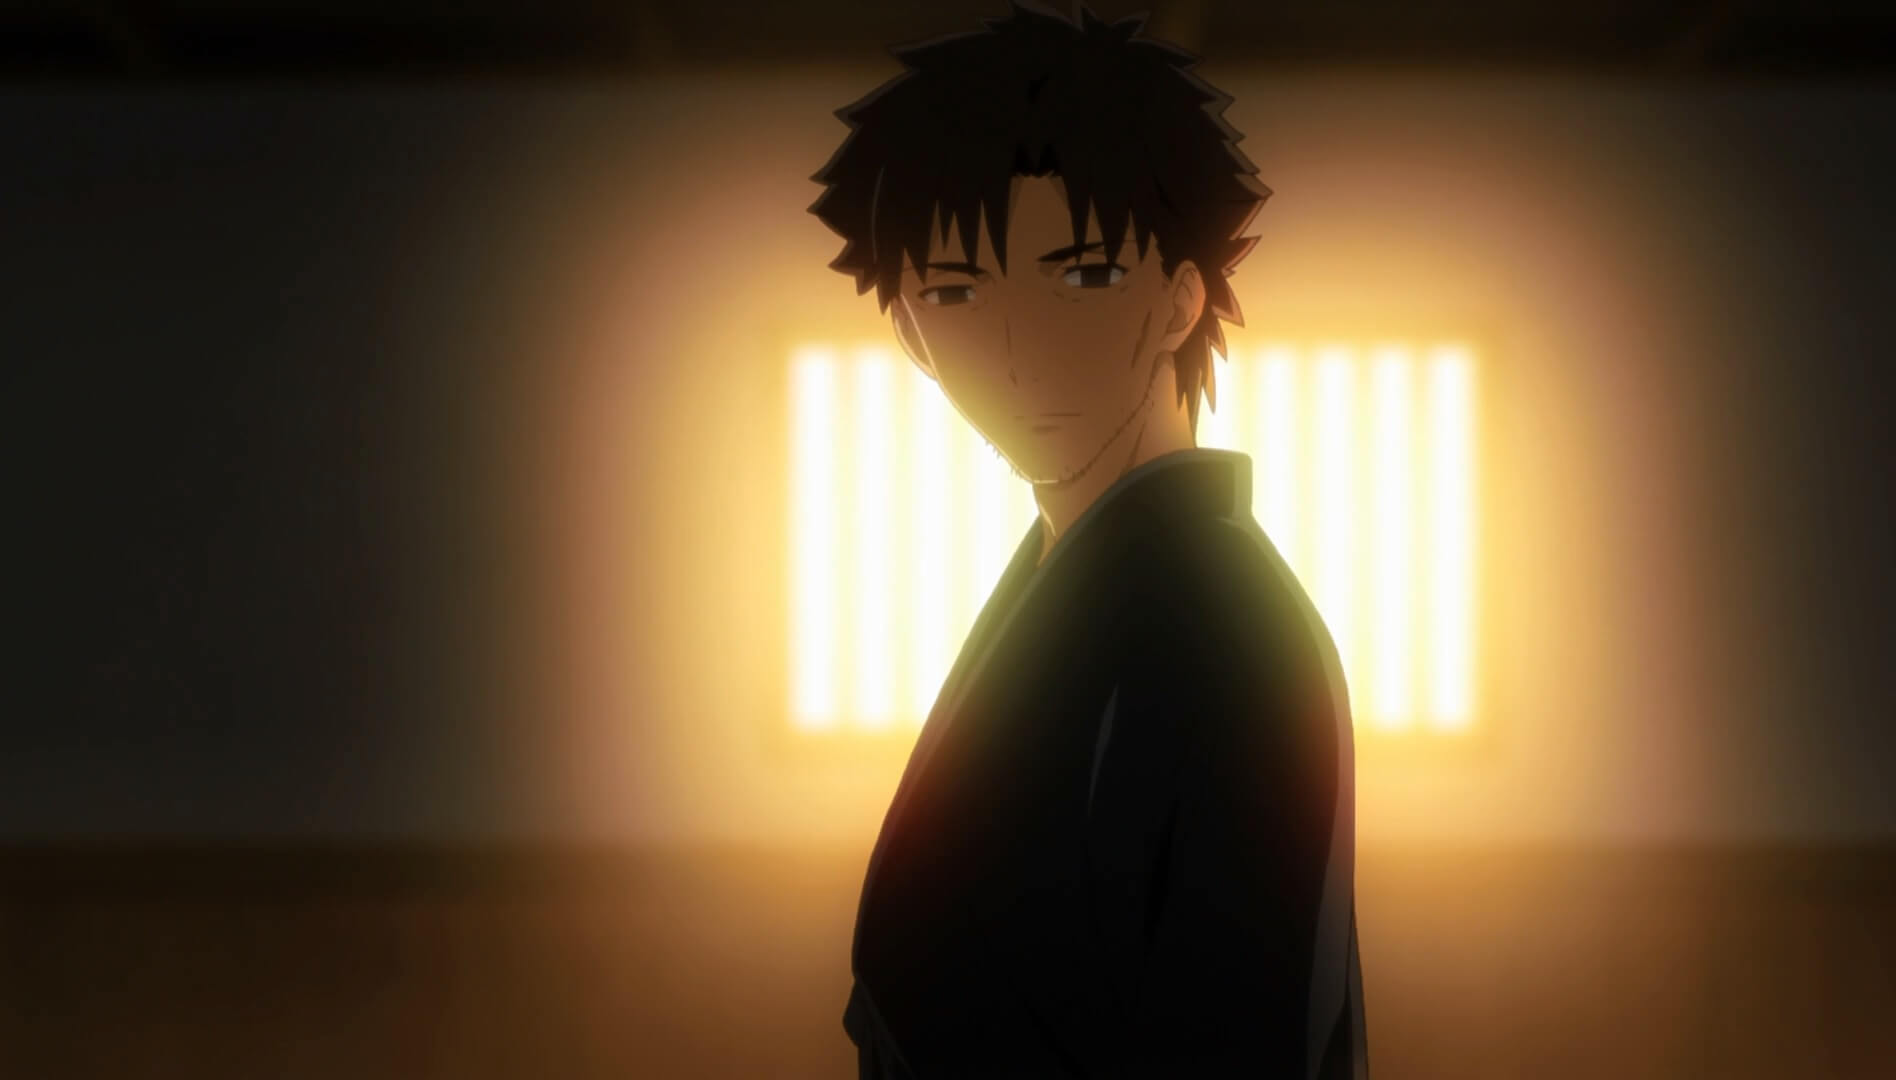 Fate Stay Night 2014 Kiritsugo